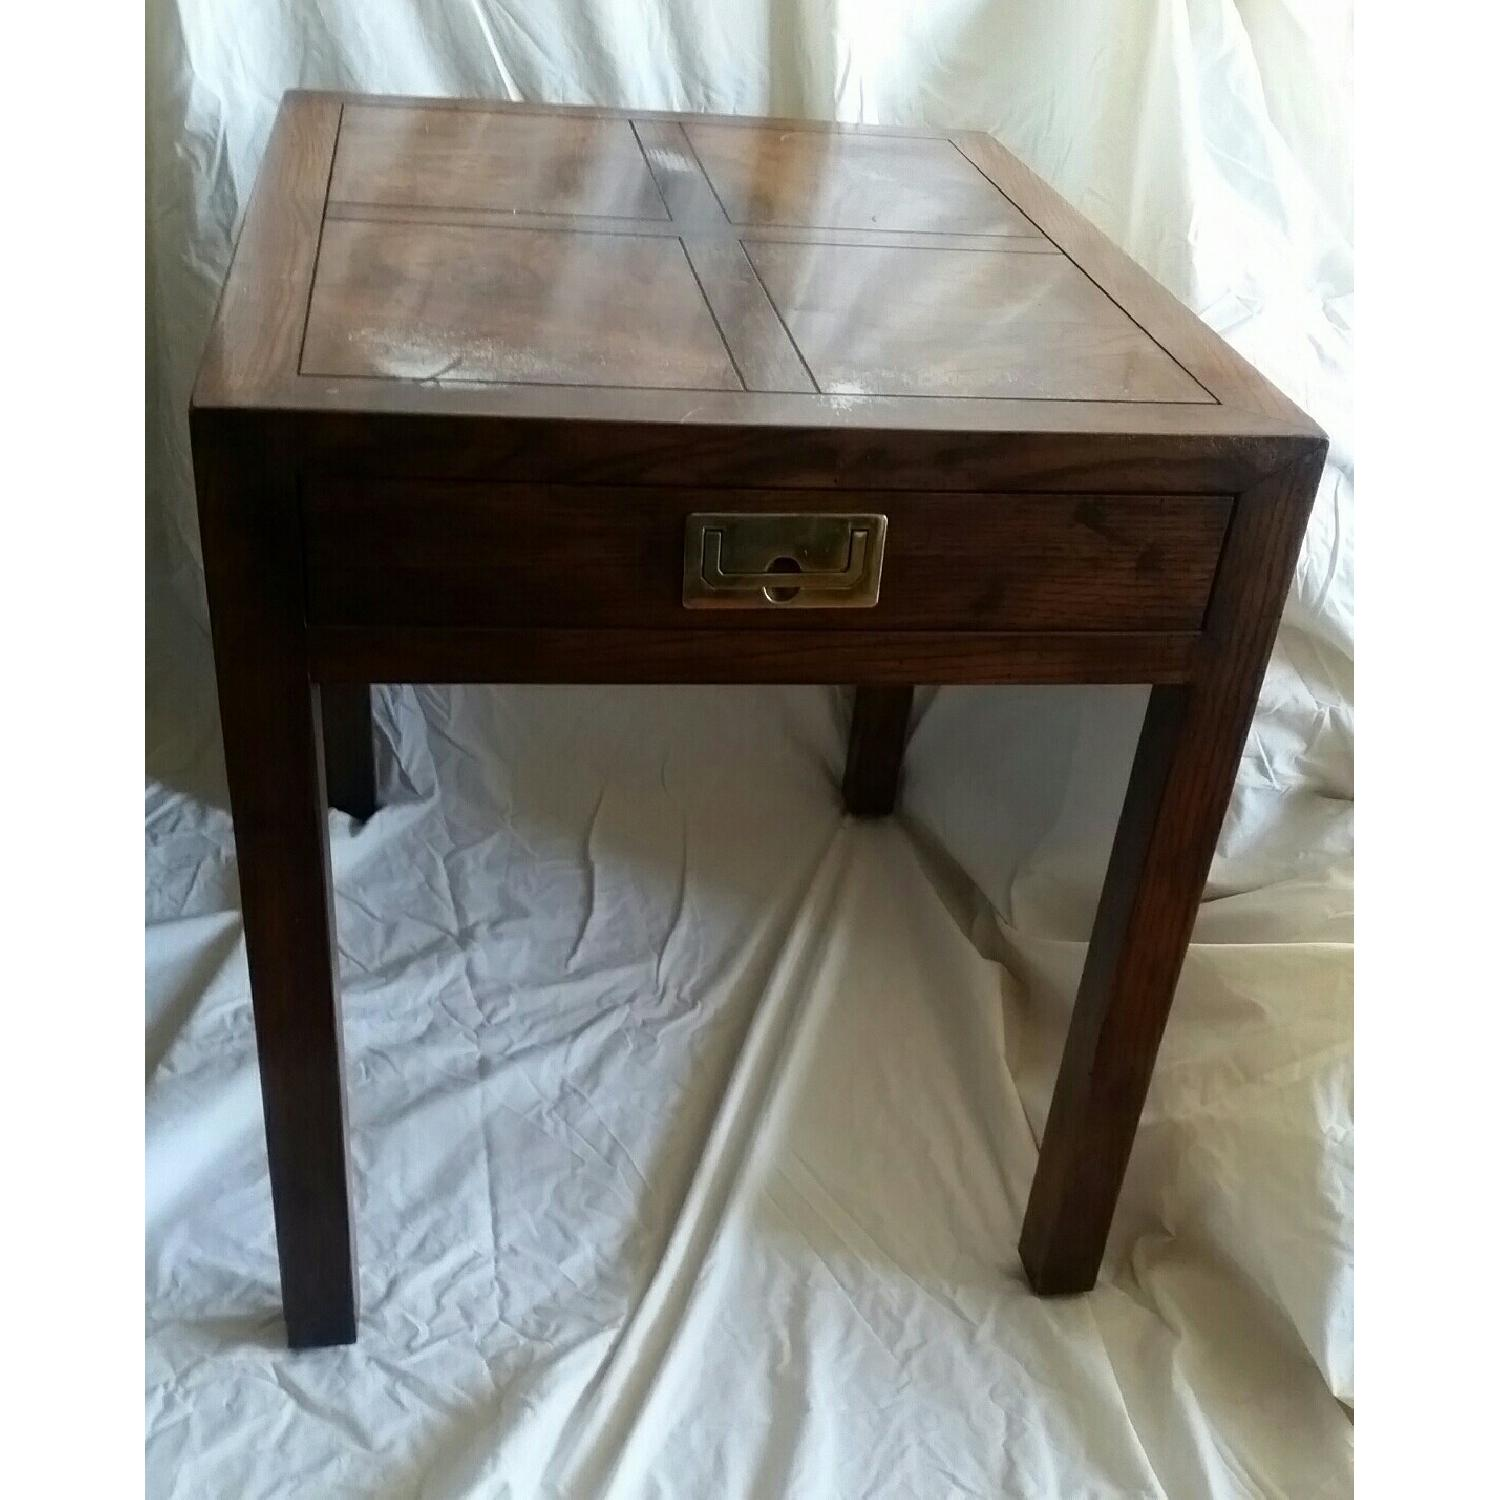 Antique Table w/ Drawer - image-1